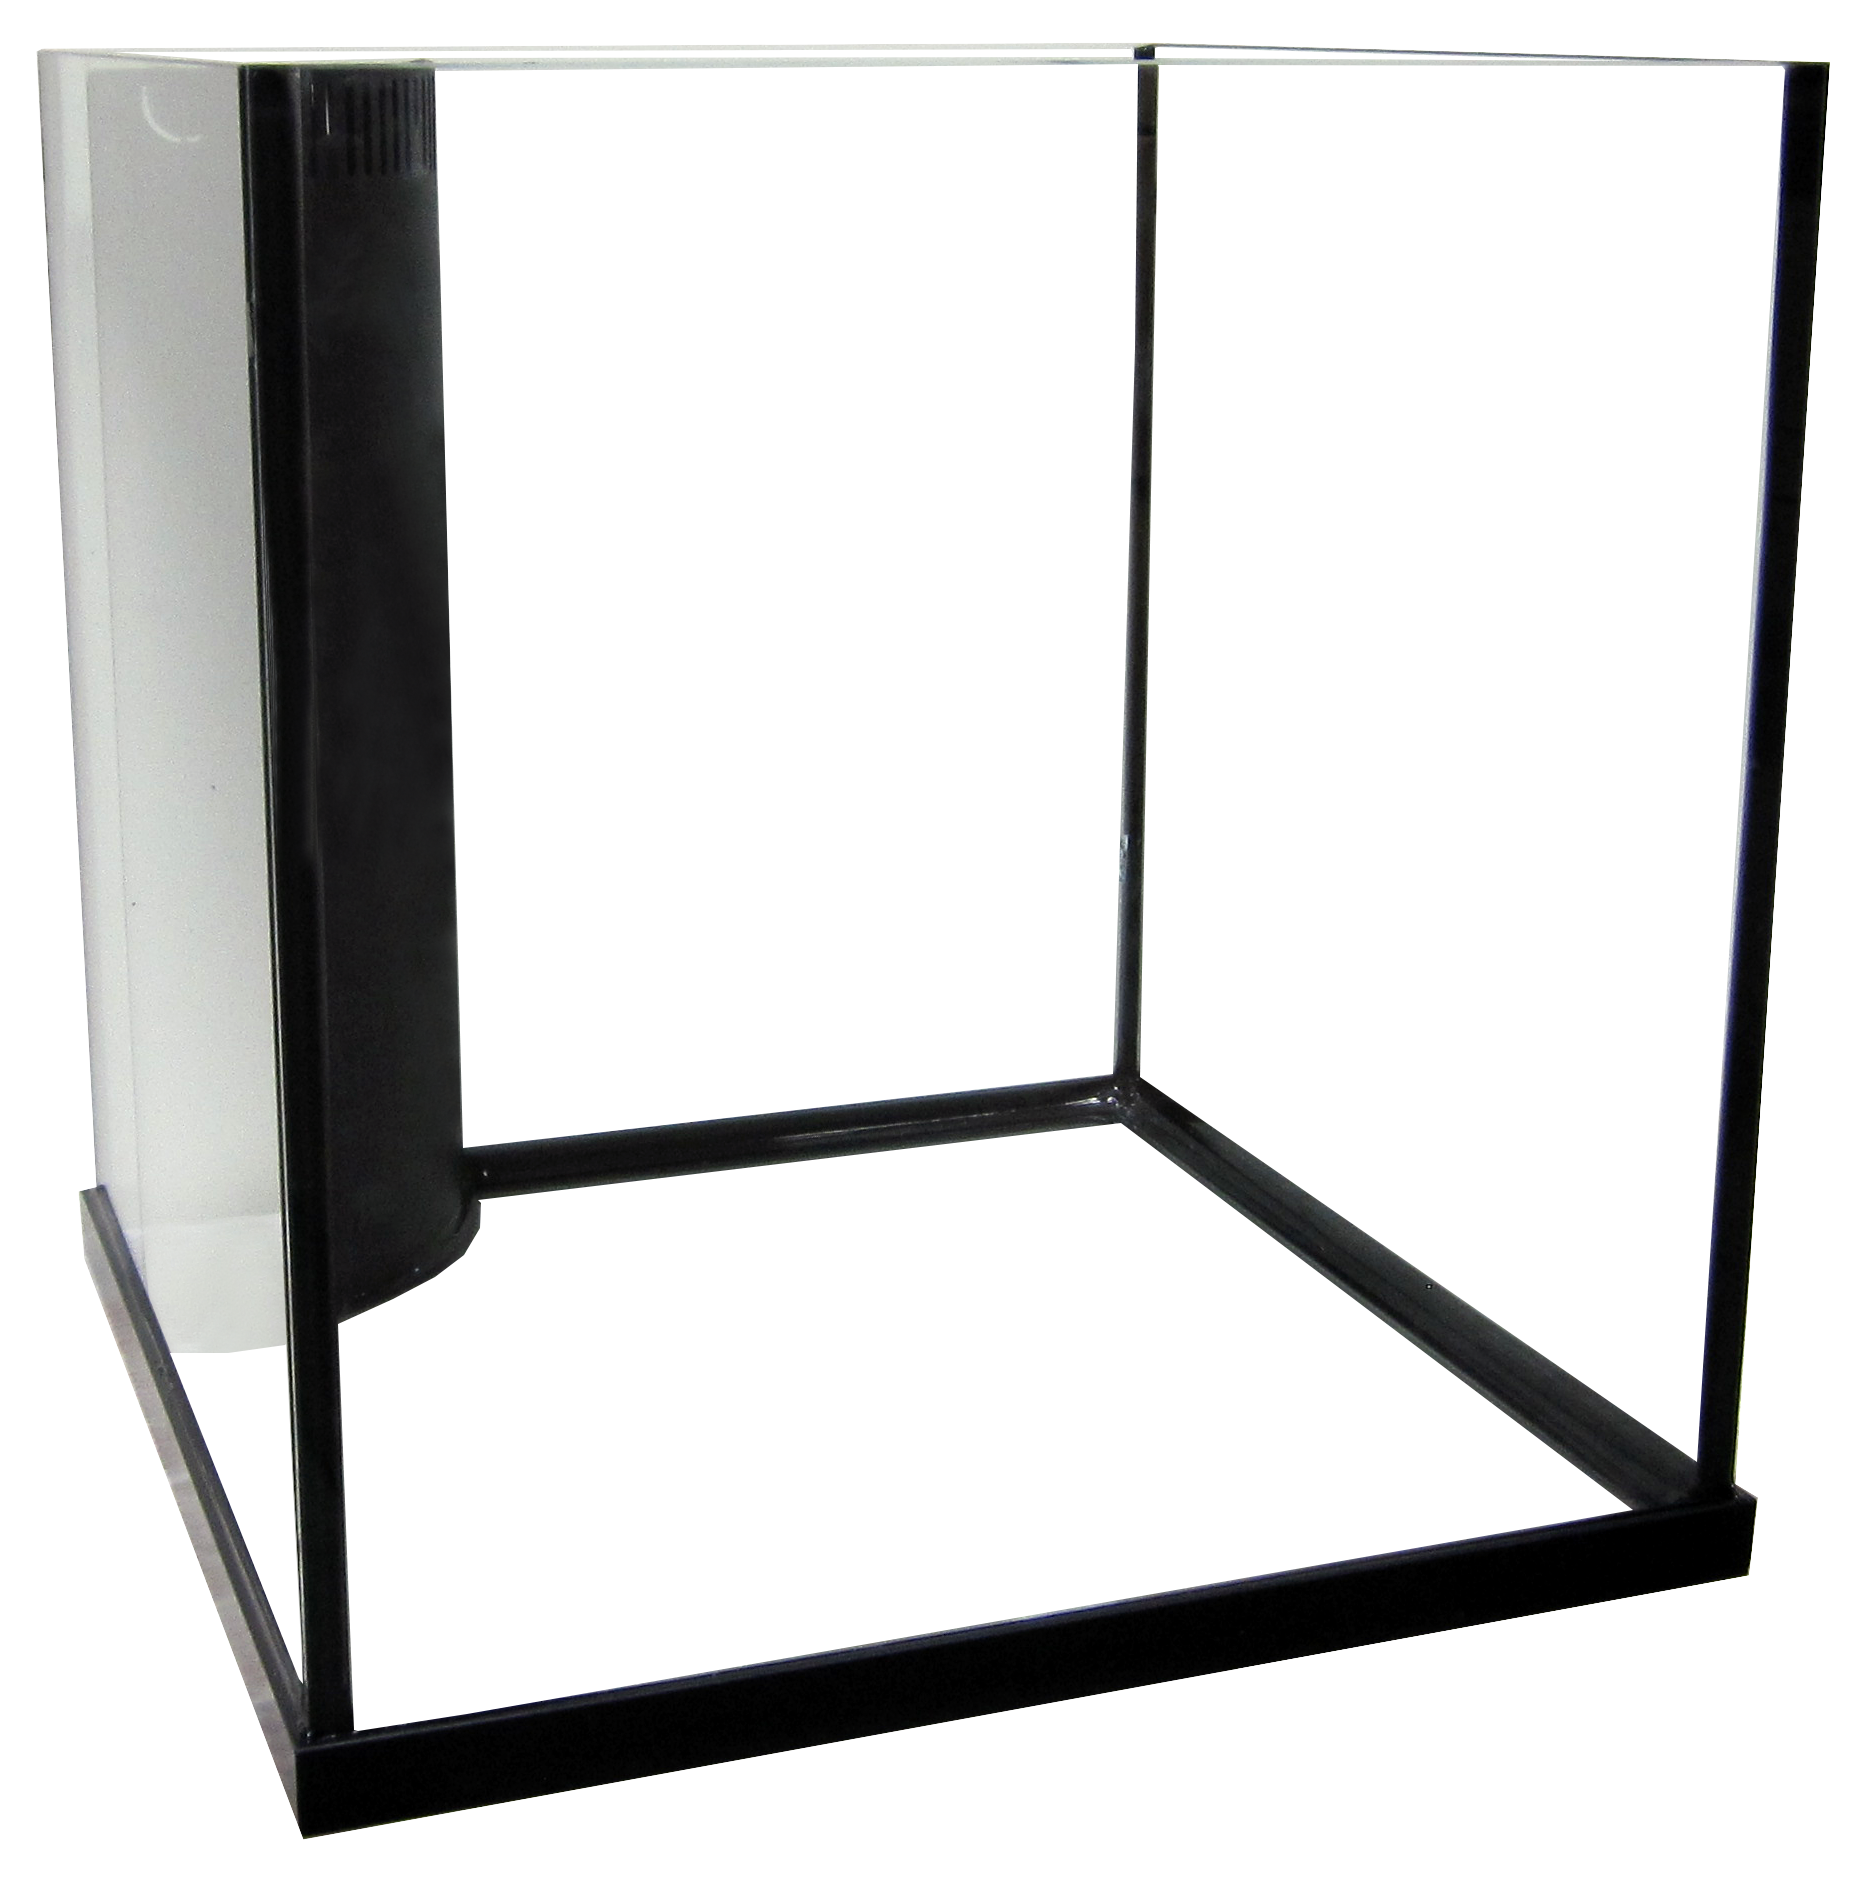 """60 Edge Series Reef Ready - 24x24x24""""   SKU#:AM13060  UPC#: 7-49729-13060-4  Product Dimension: 24.5""""x24.5""""x25""""  Capacity: Approximately 60 gallons  Weight: 105.6 lbs"""